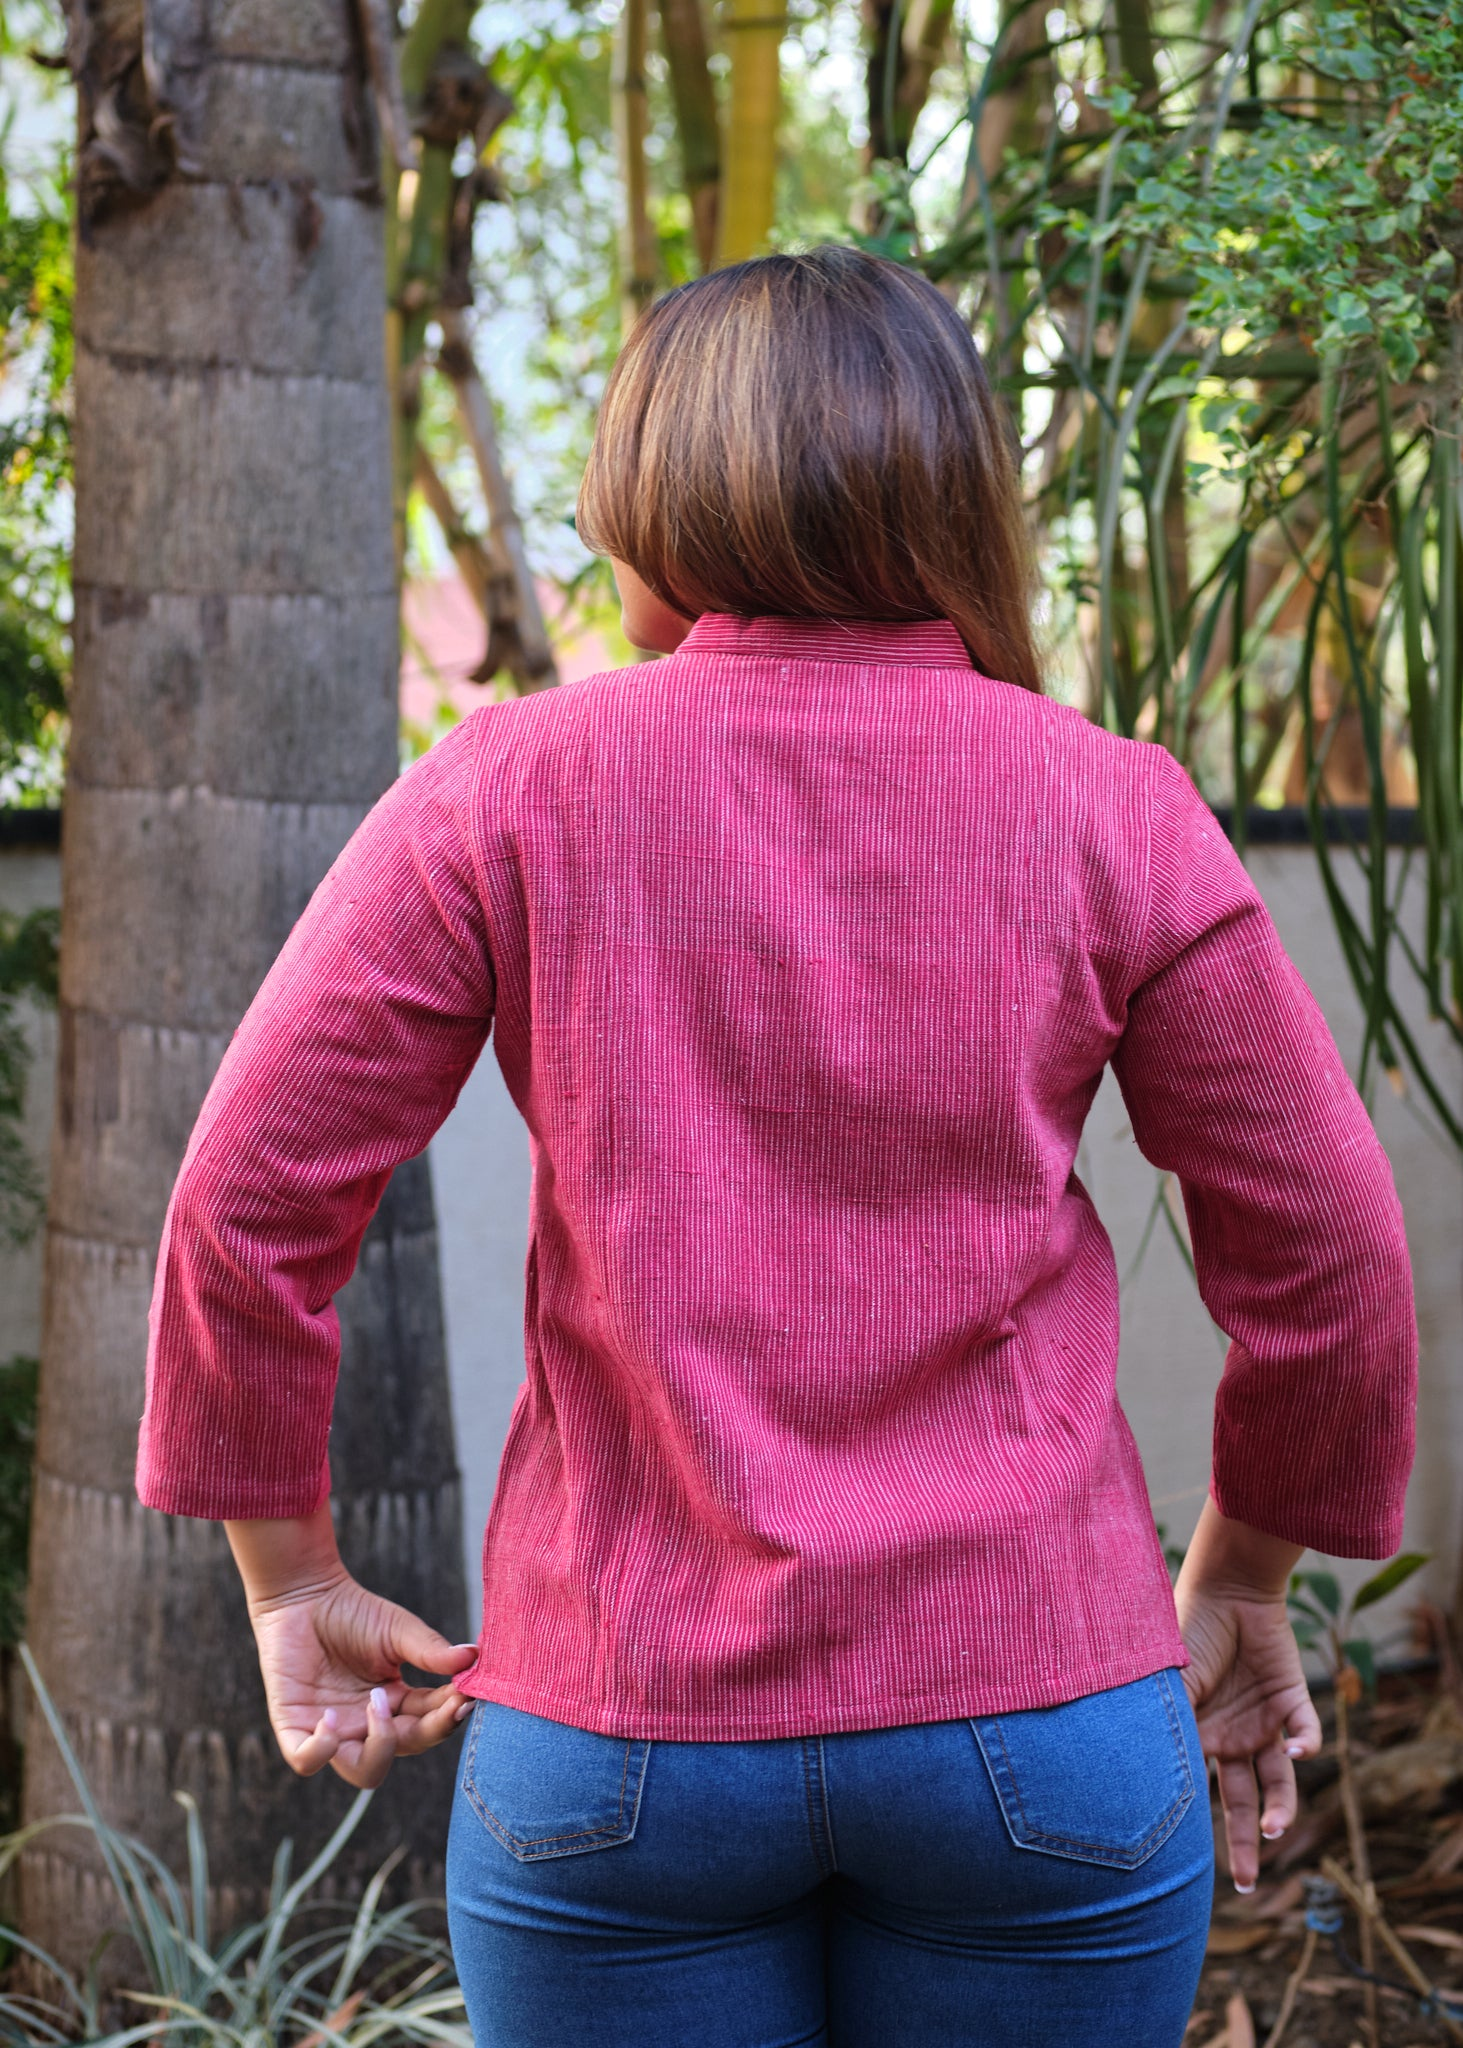 woman in a red shirt back side view